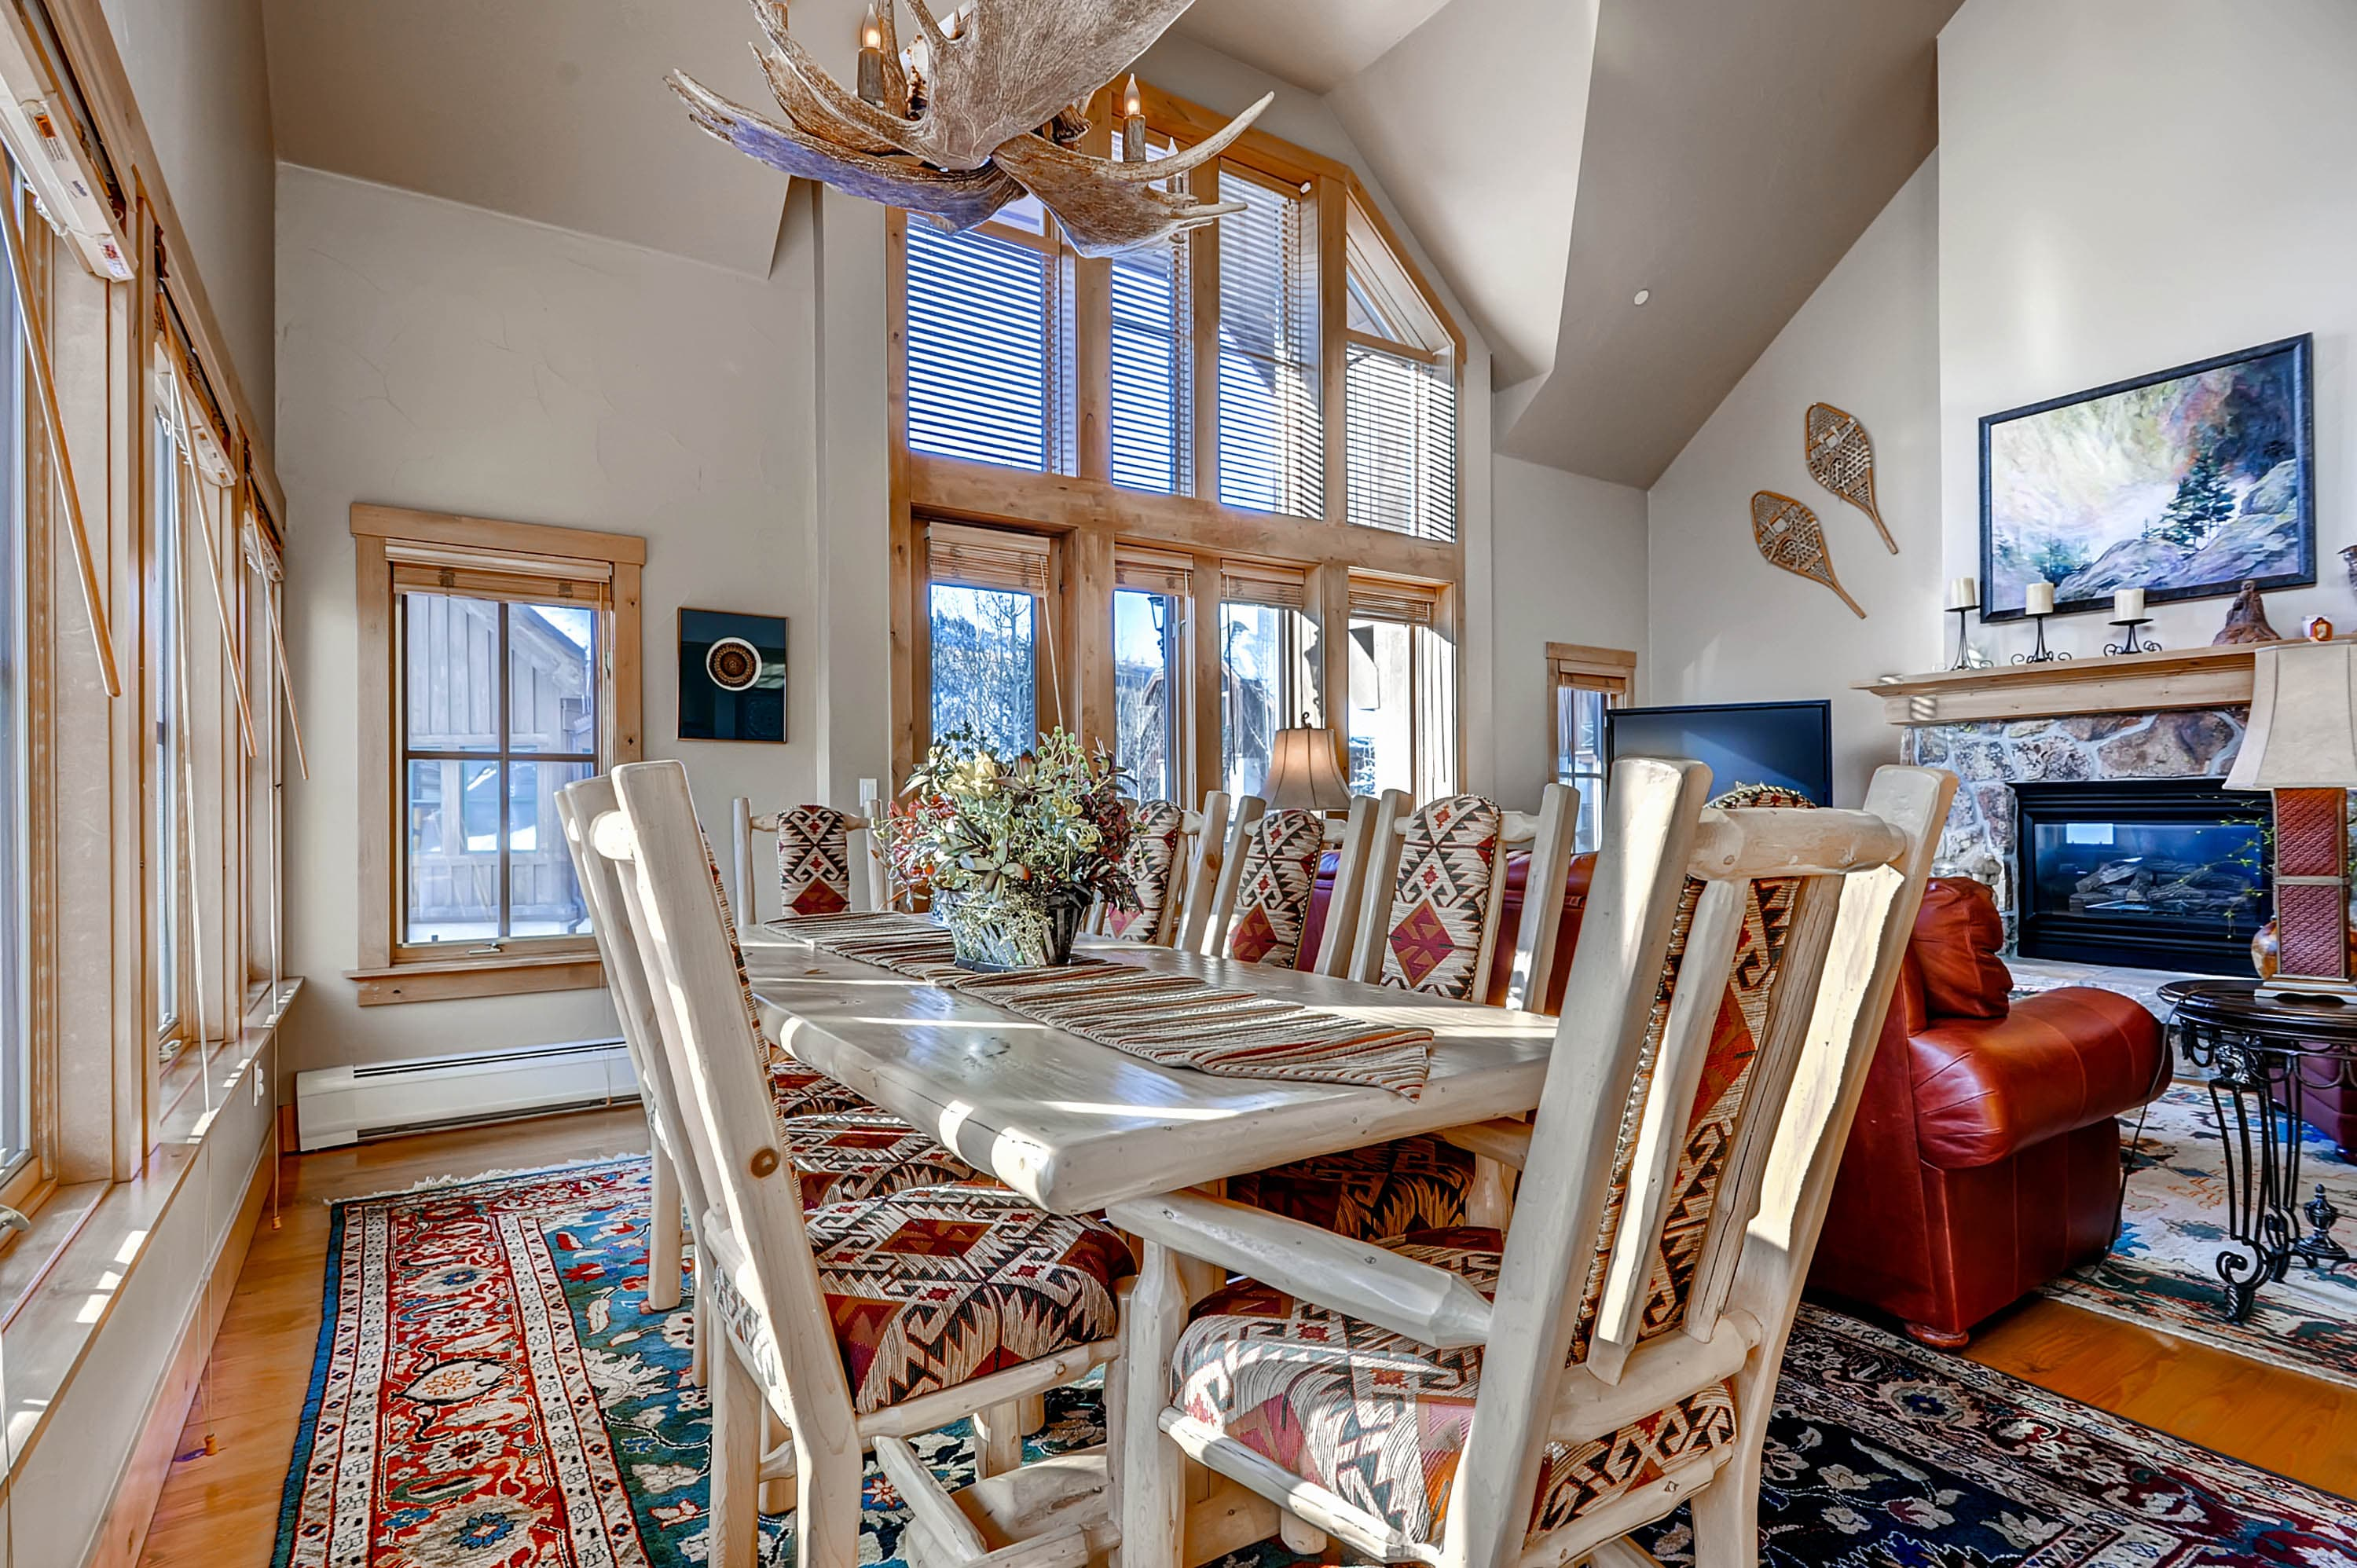 Property Image 2 - Roomy, Sun-Lit Townhome with On-Site Pool, Hot Tub & Skiing